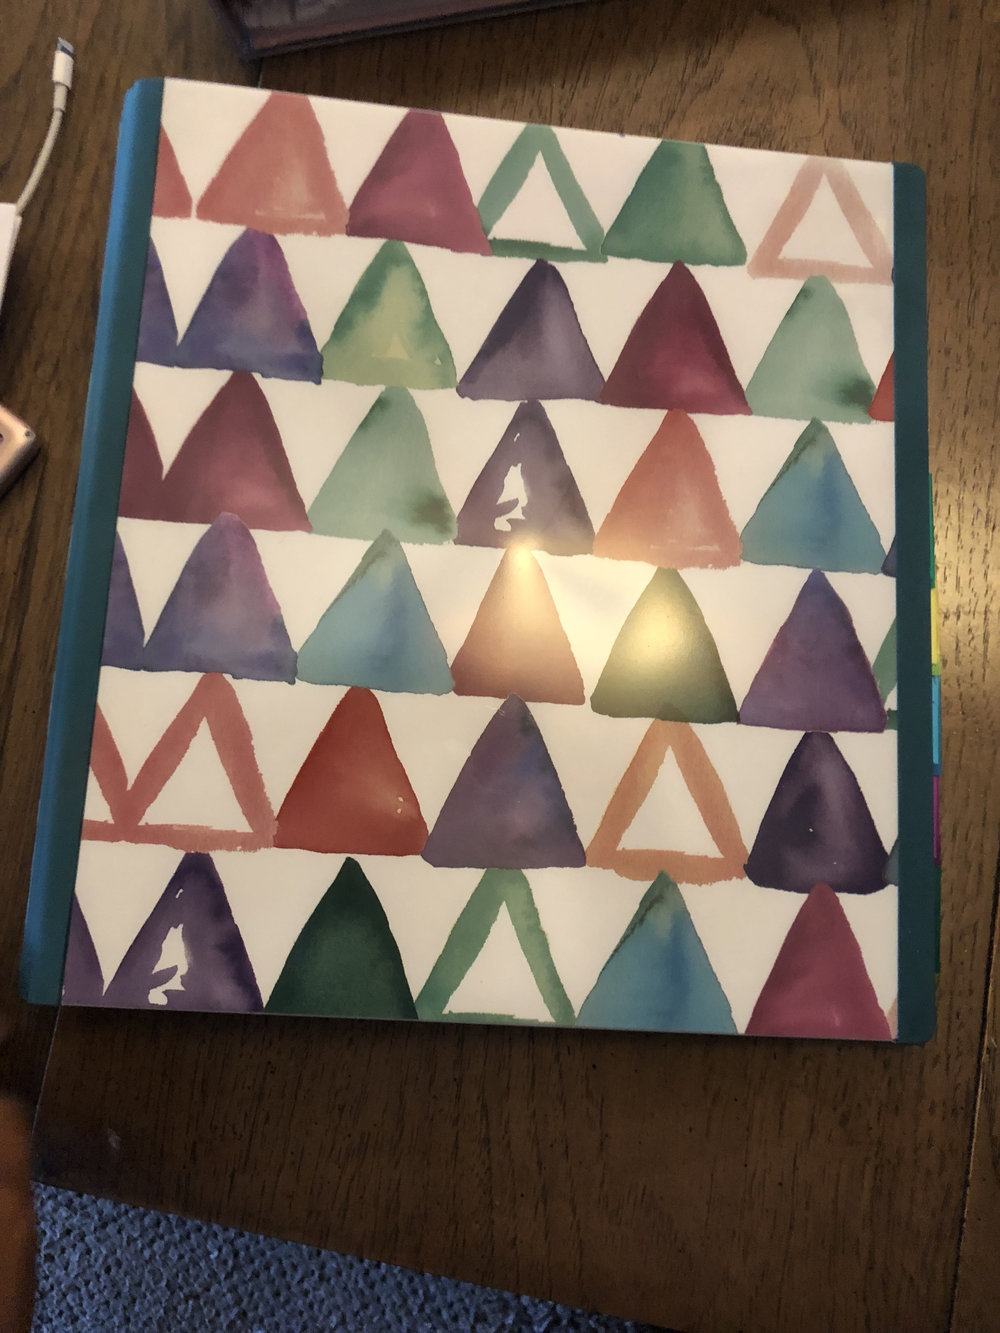 Caption: I purchased this binder Staples. It has the capacity to hold 400 sheets of paper, which should carry me for a long time before I need to add a second binder. Most Office Supply stores have really beautiful options. I also like this binder because it has a lot of symbolism with the triangle. It is the elemental symbol for fire. When turned upside down it becomes the symbol for water. The colors represent fire and the upside down triangles (the white space) represents water. Triangles are also the strongest shape.